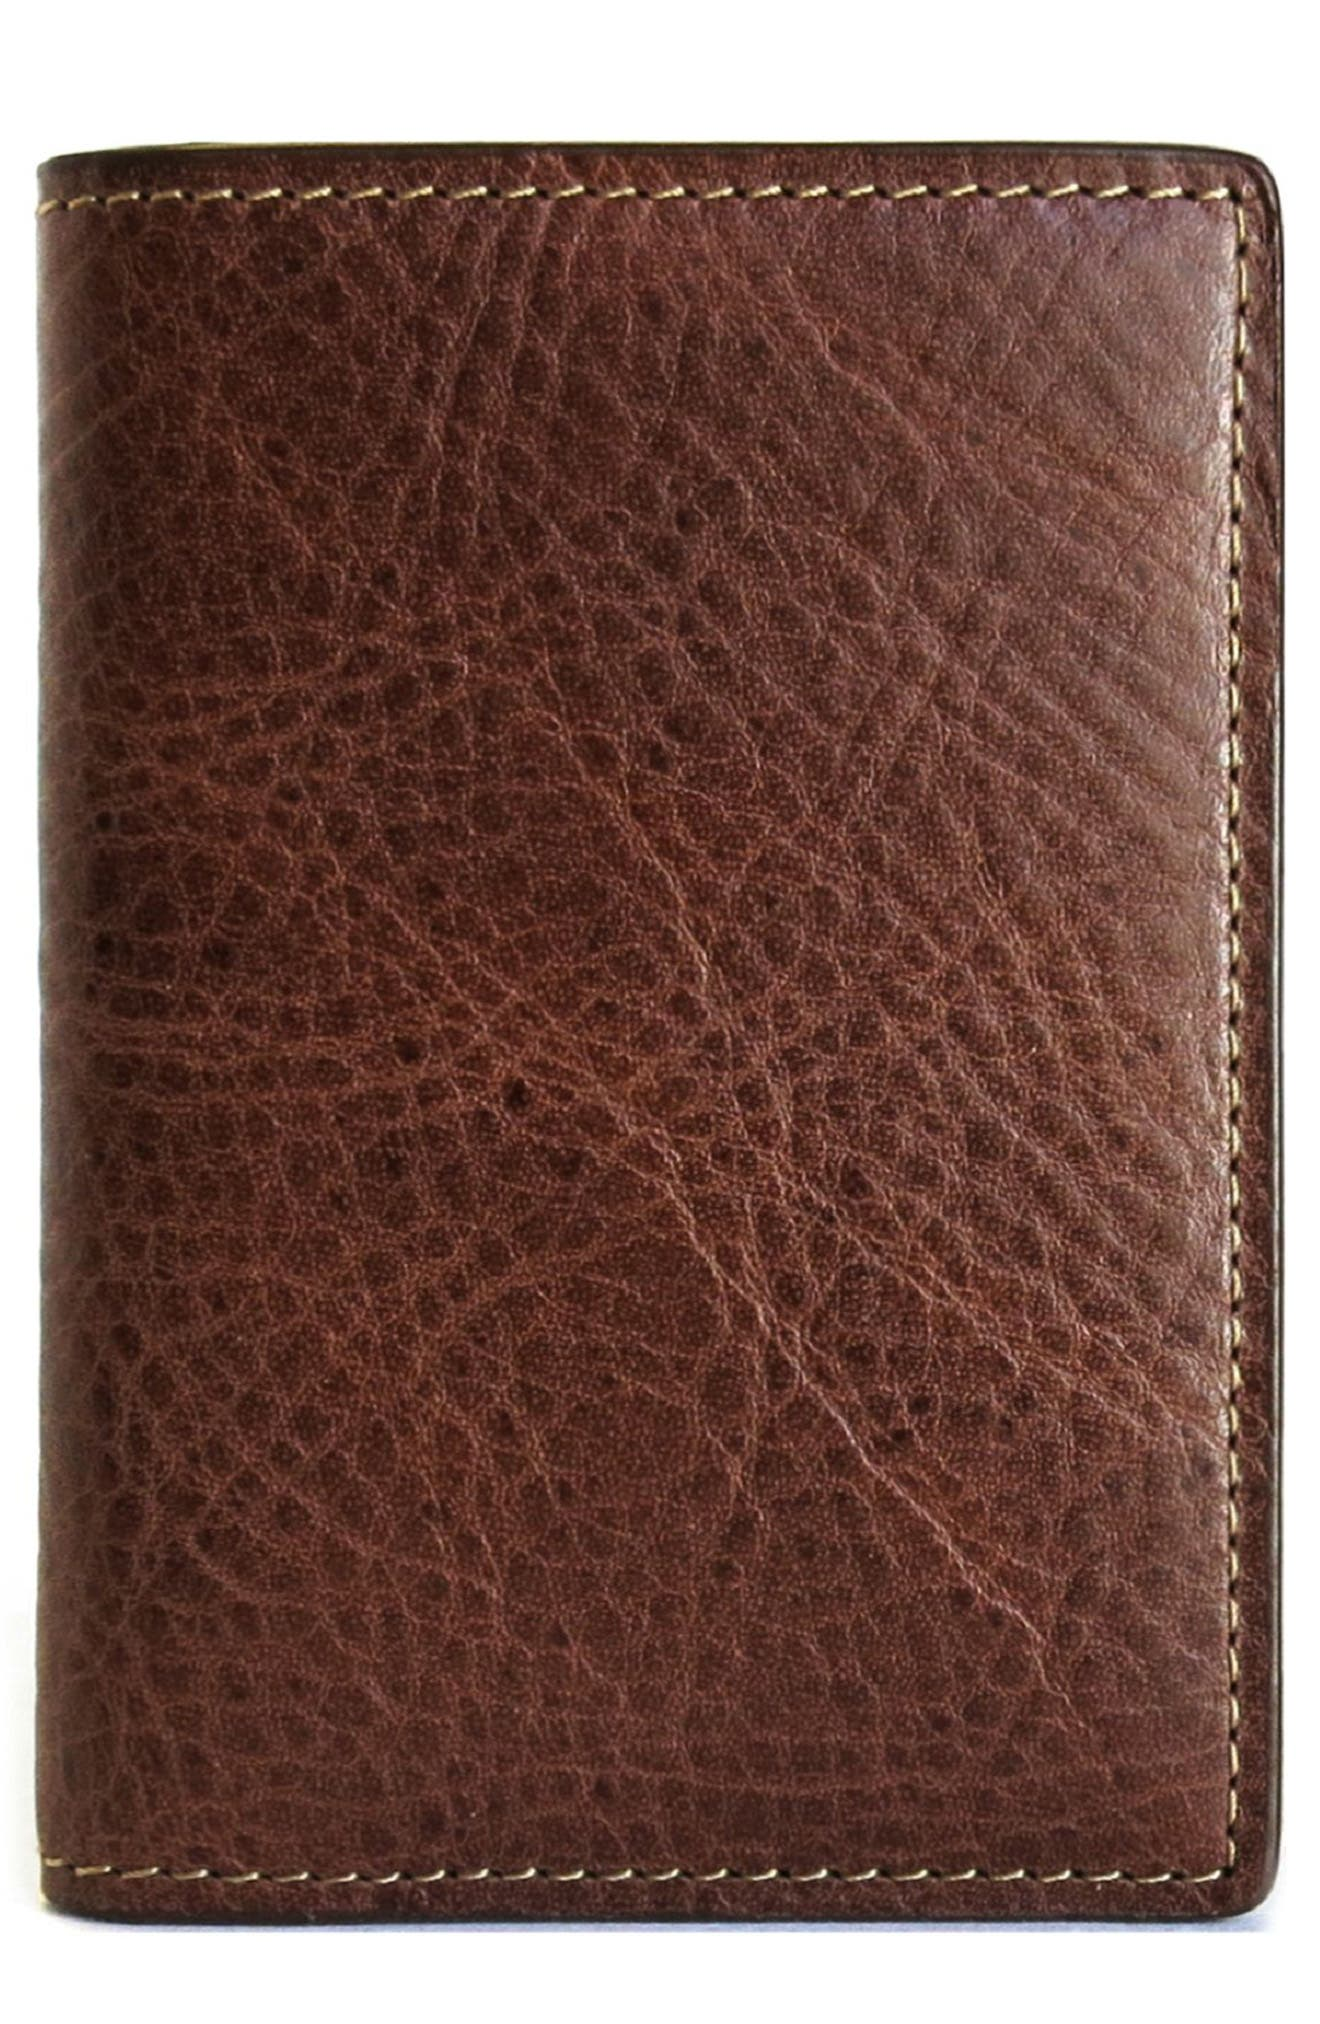 Caleb Leather Folding Card Case,                             Main thumbnail 1, color,                             CHESTNUT